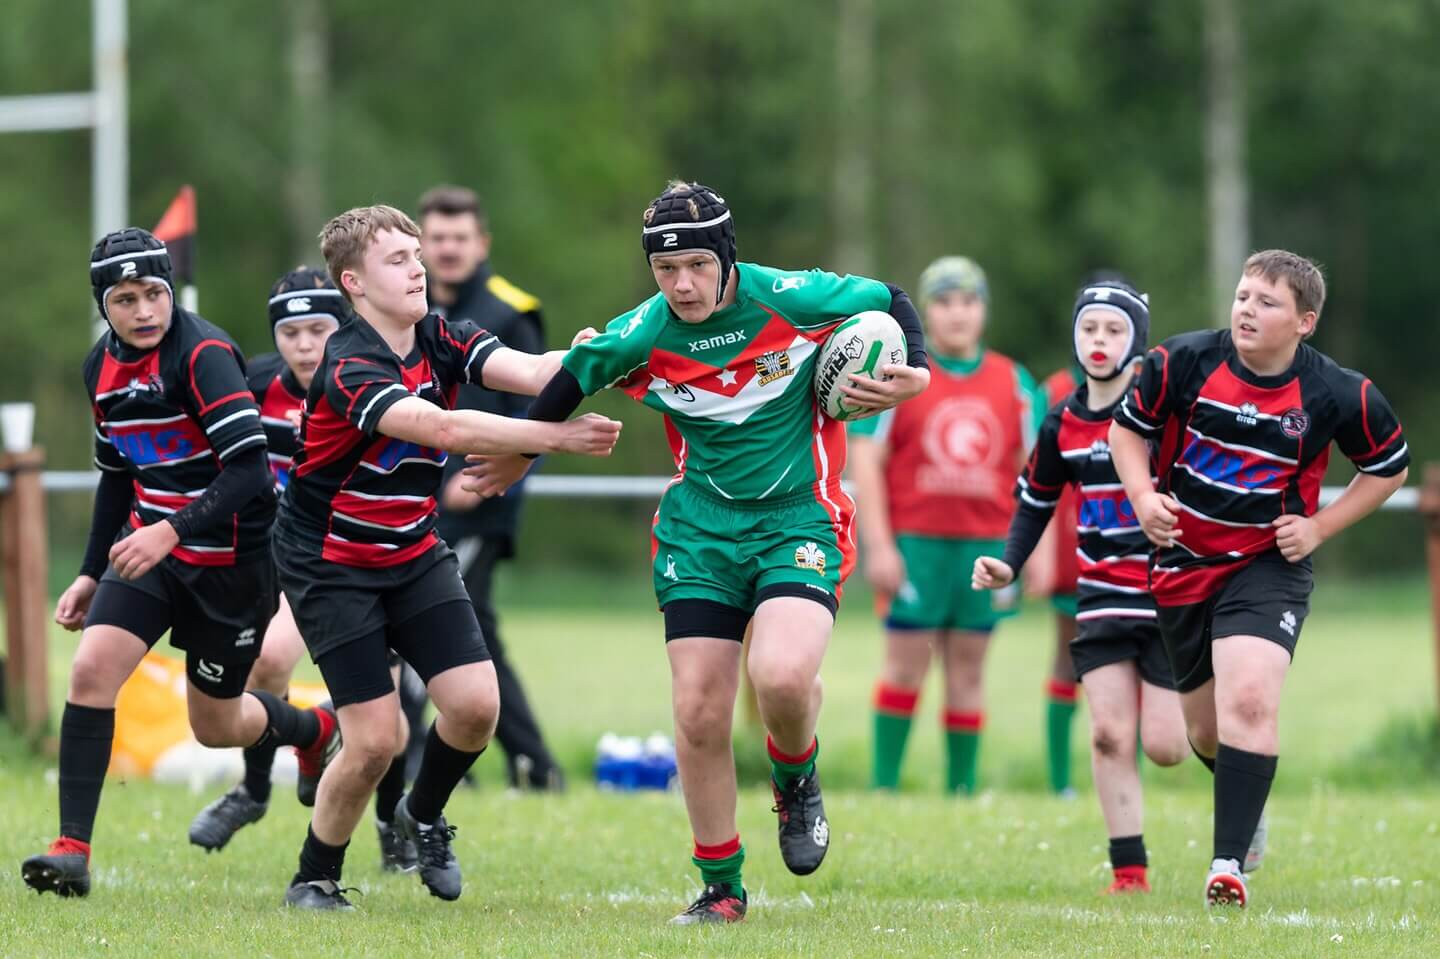 Leyland Warriors U13s 0-62 North Wales Crusaders U13s